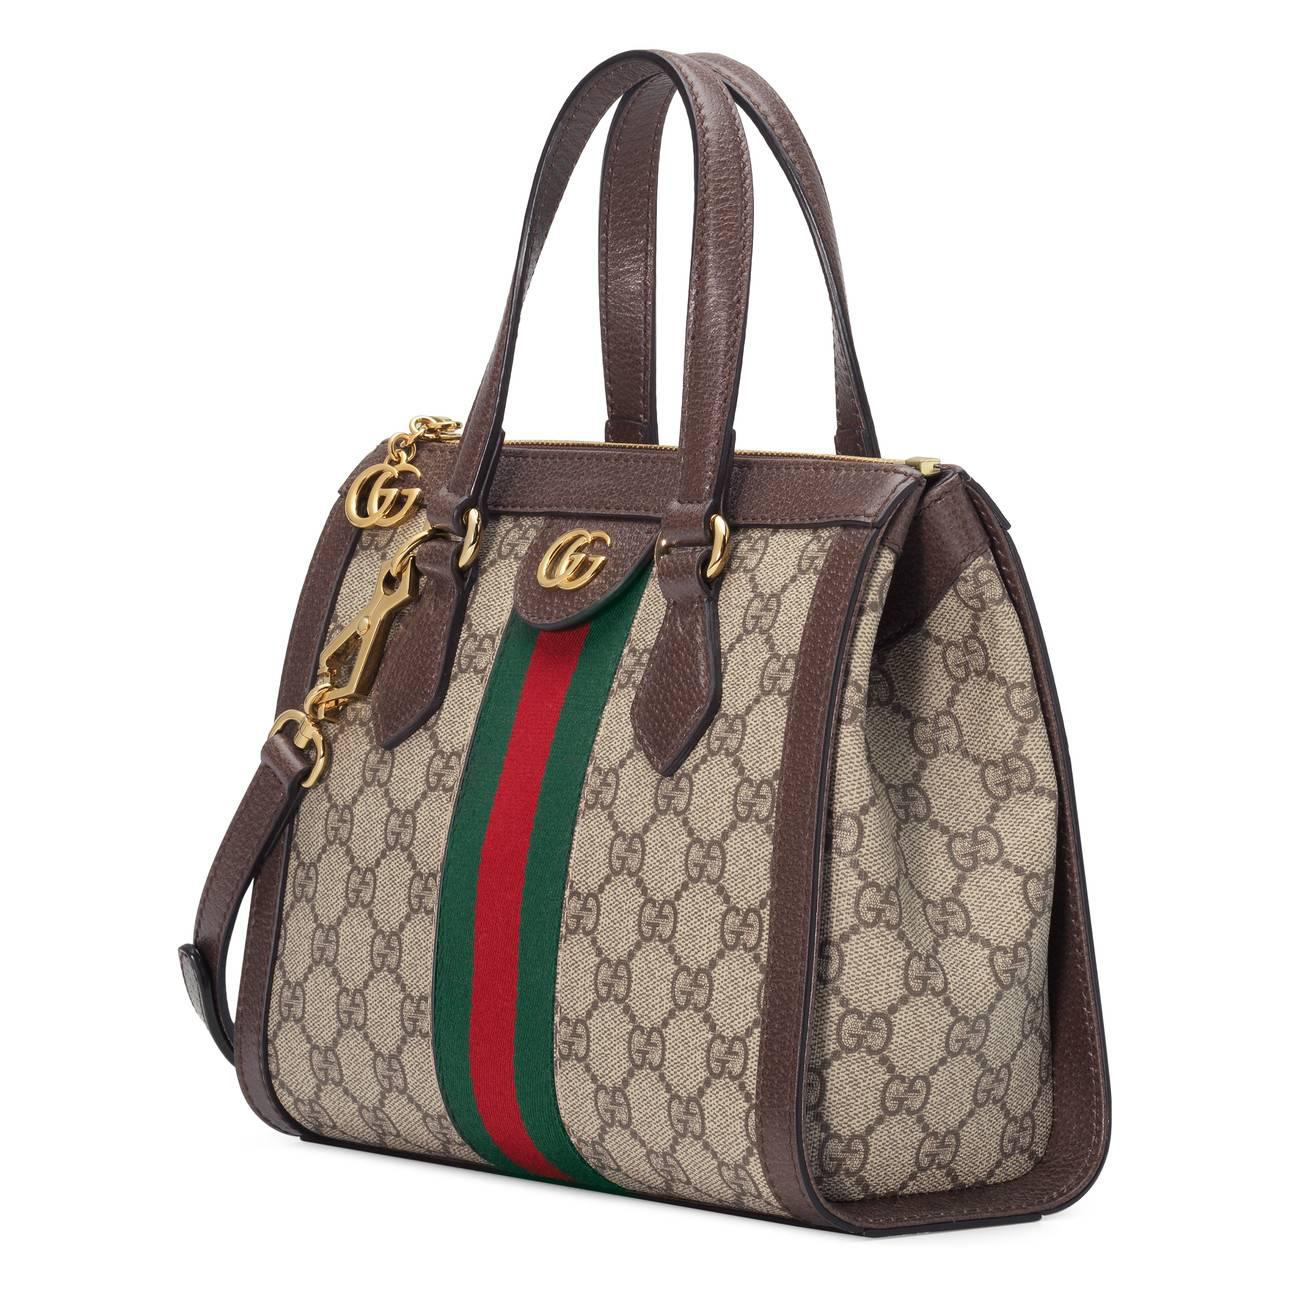 576d7bf951e5 Gucci - Green Ophidia Small Gg Tote Bag - Lyst. View fullscreen